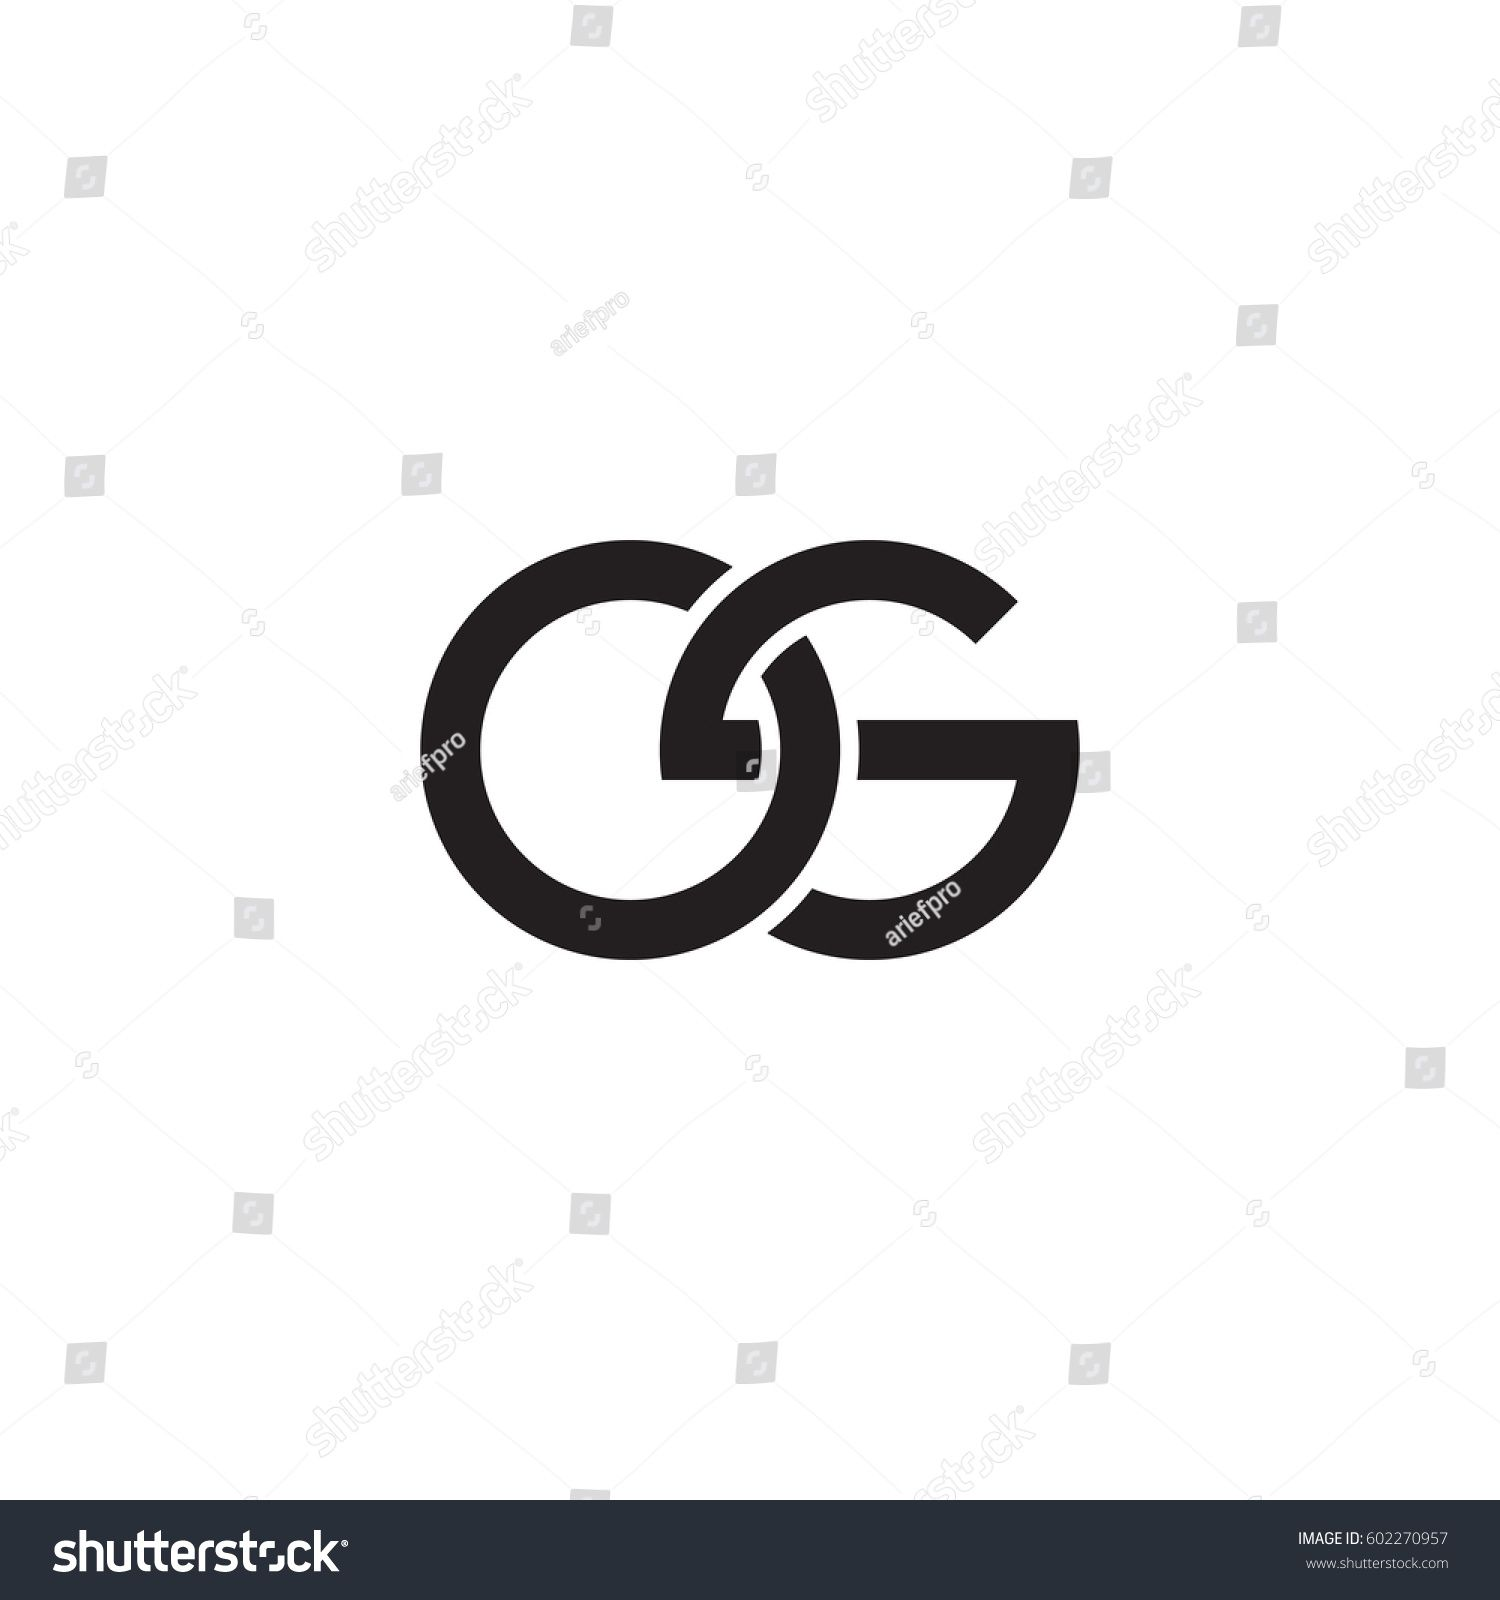 Initial letters os, round overlapping chain shape